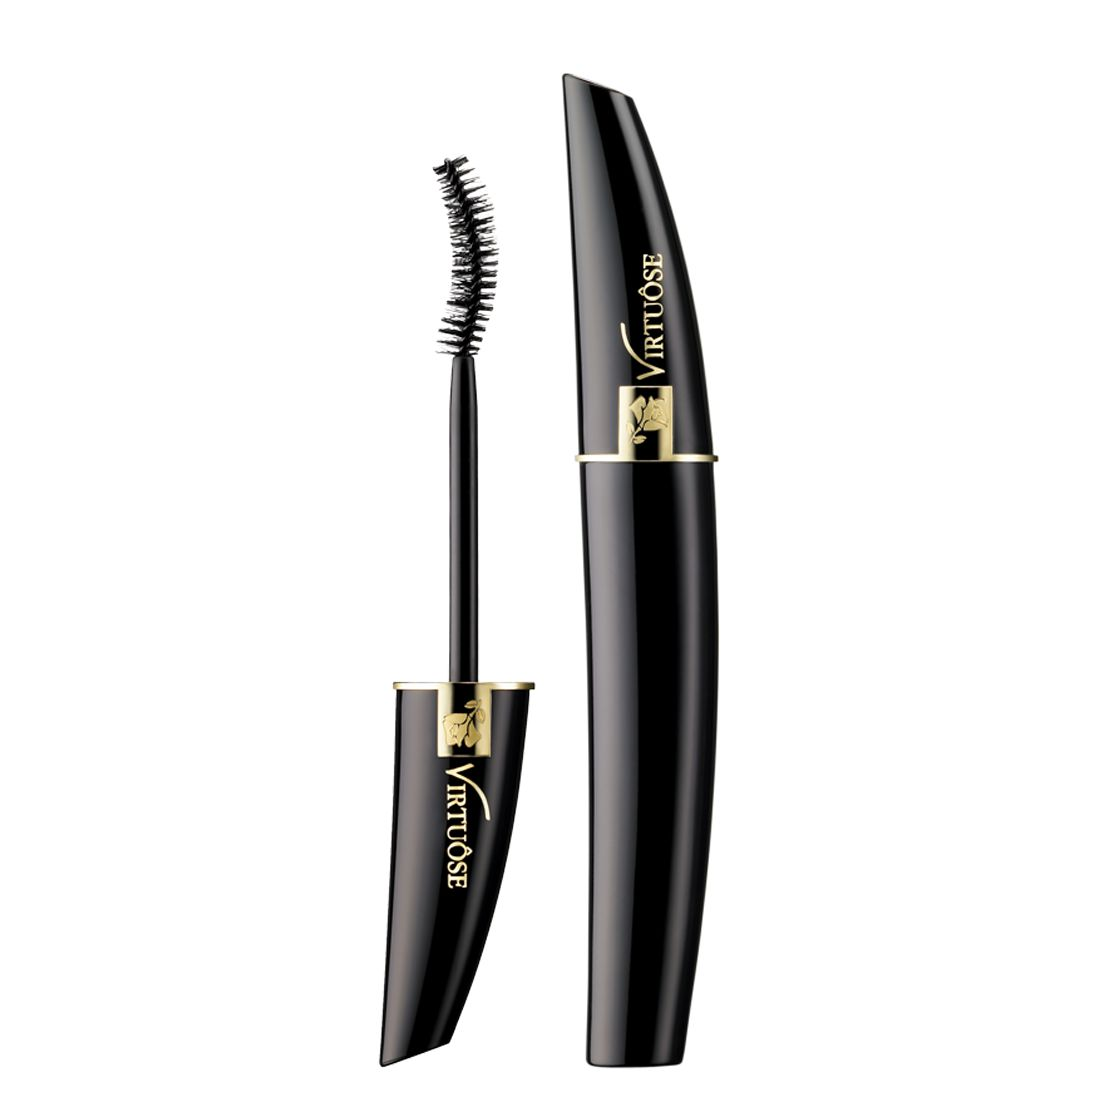 Virtuose Mascara